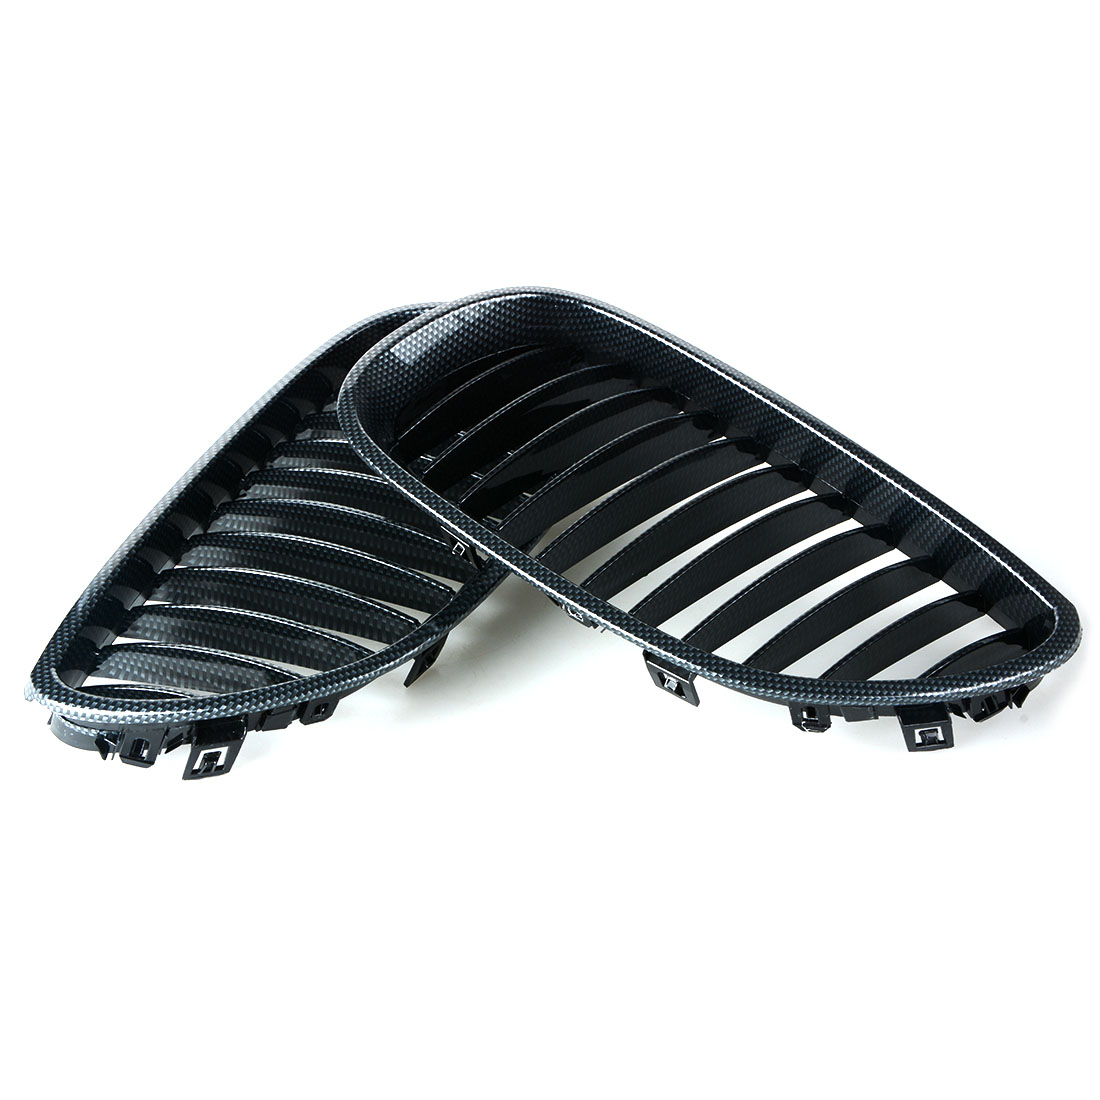 1 Pair Auto Replacement Parts Racing Grills Car Front Kidney Grille Carbon Fiber Grilles For BMW 5 Series E60 2003 2009